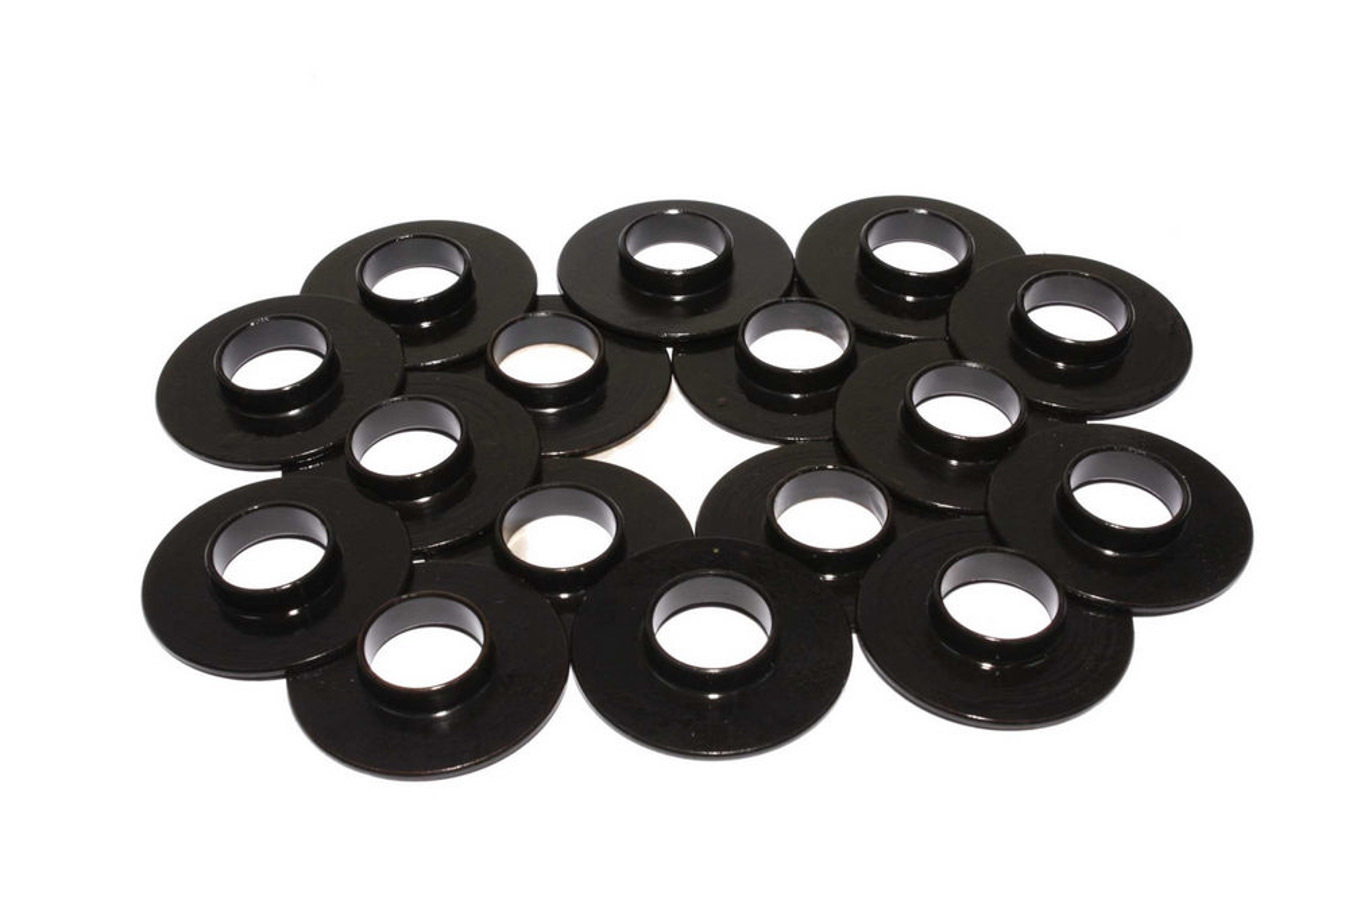 Comp Cams 4775-16 Valve Spring Locator, Inside, 0.060 in Thick, 1.540 in OD, 0.640 in ID, 0.765 in Spring ID, Steel, Set of 16